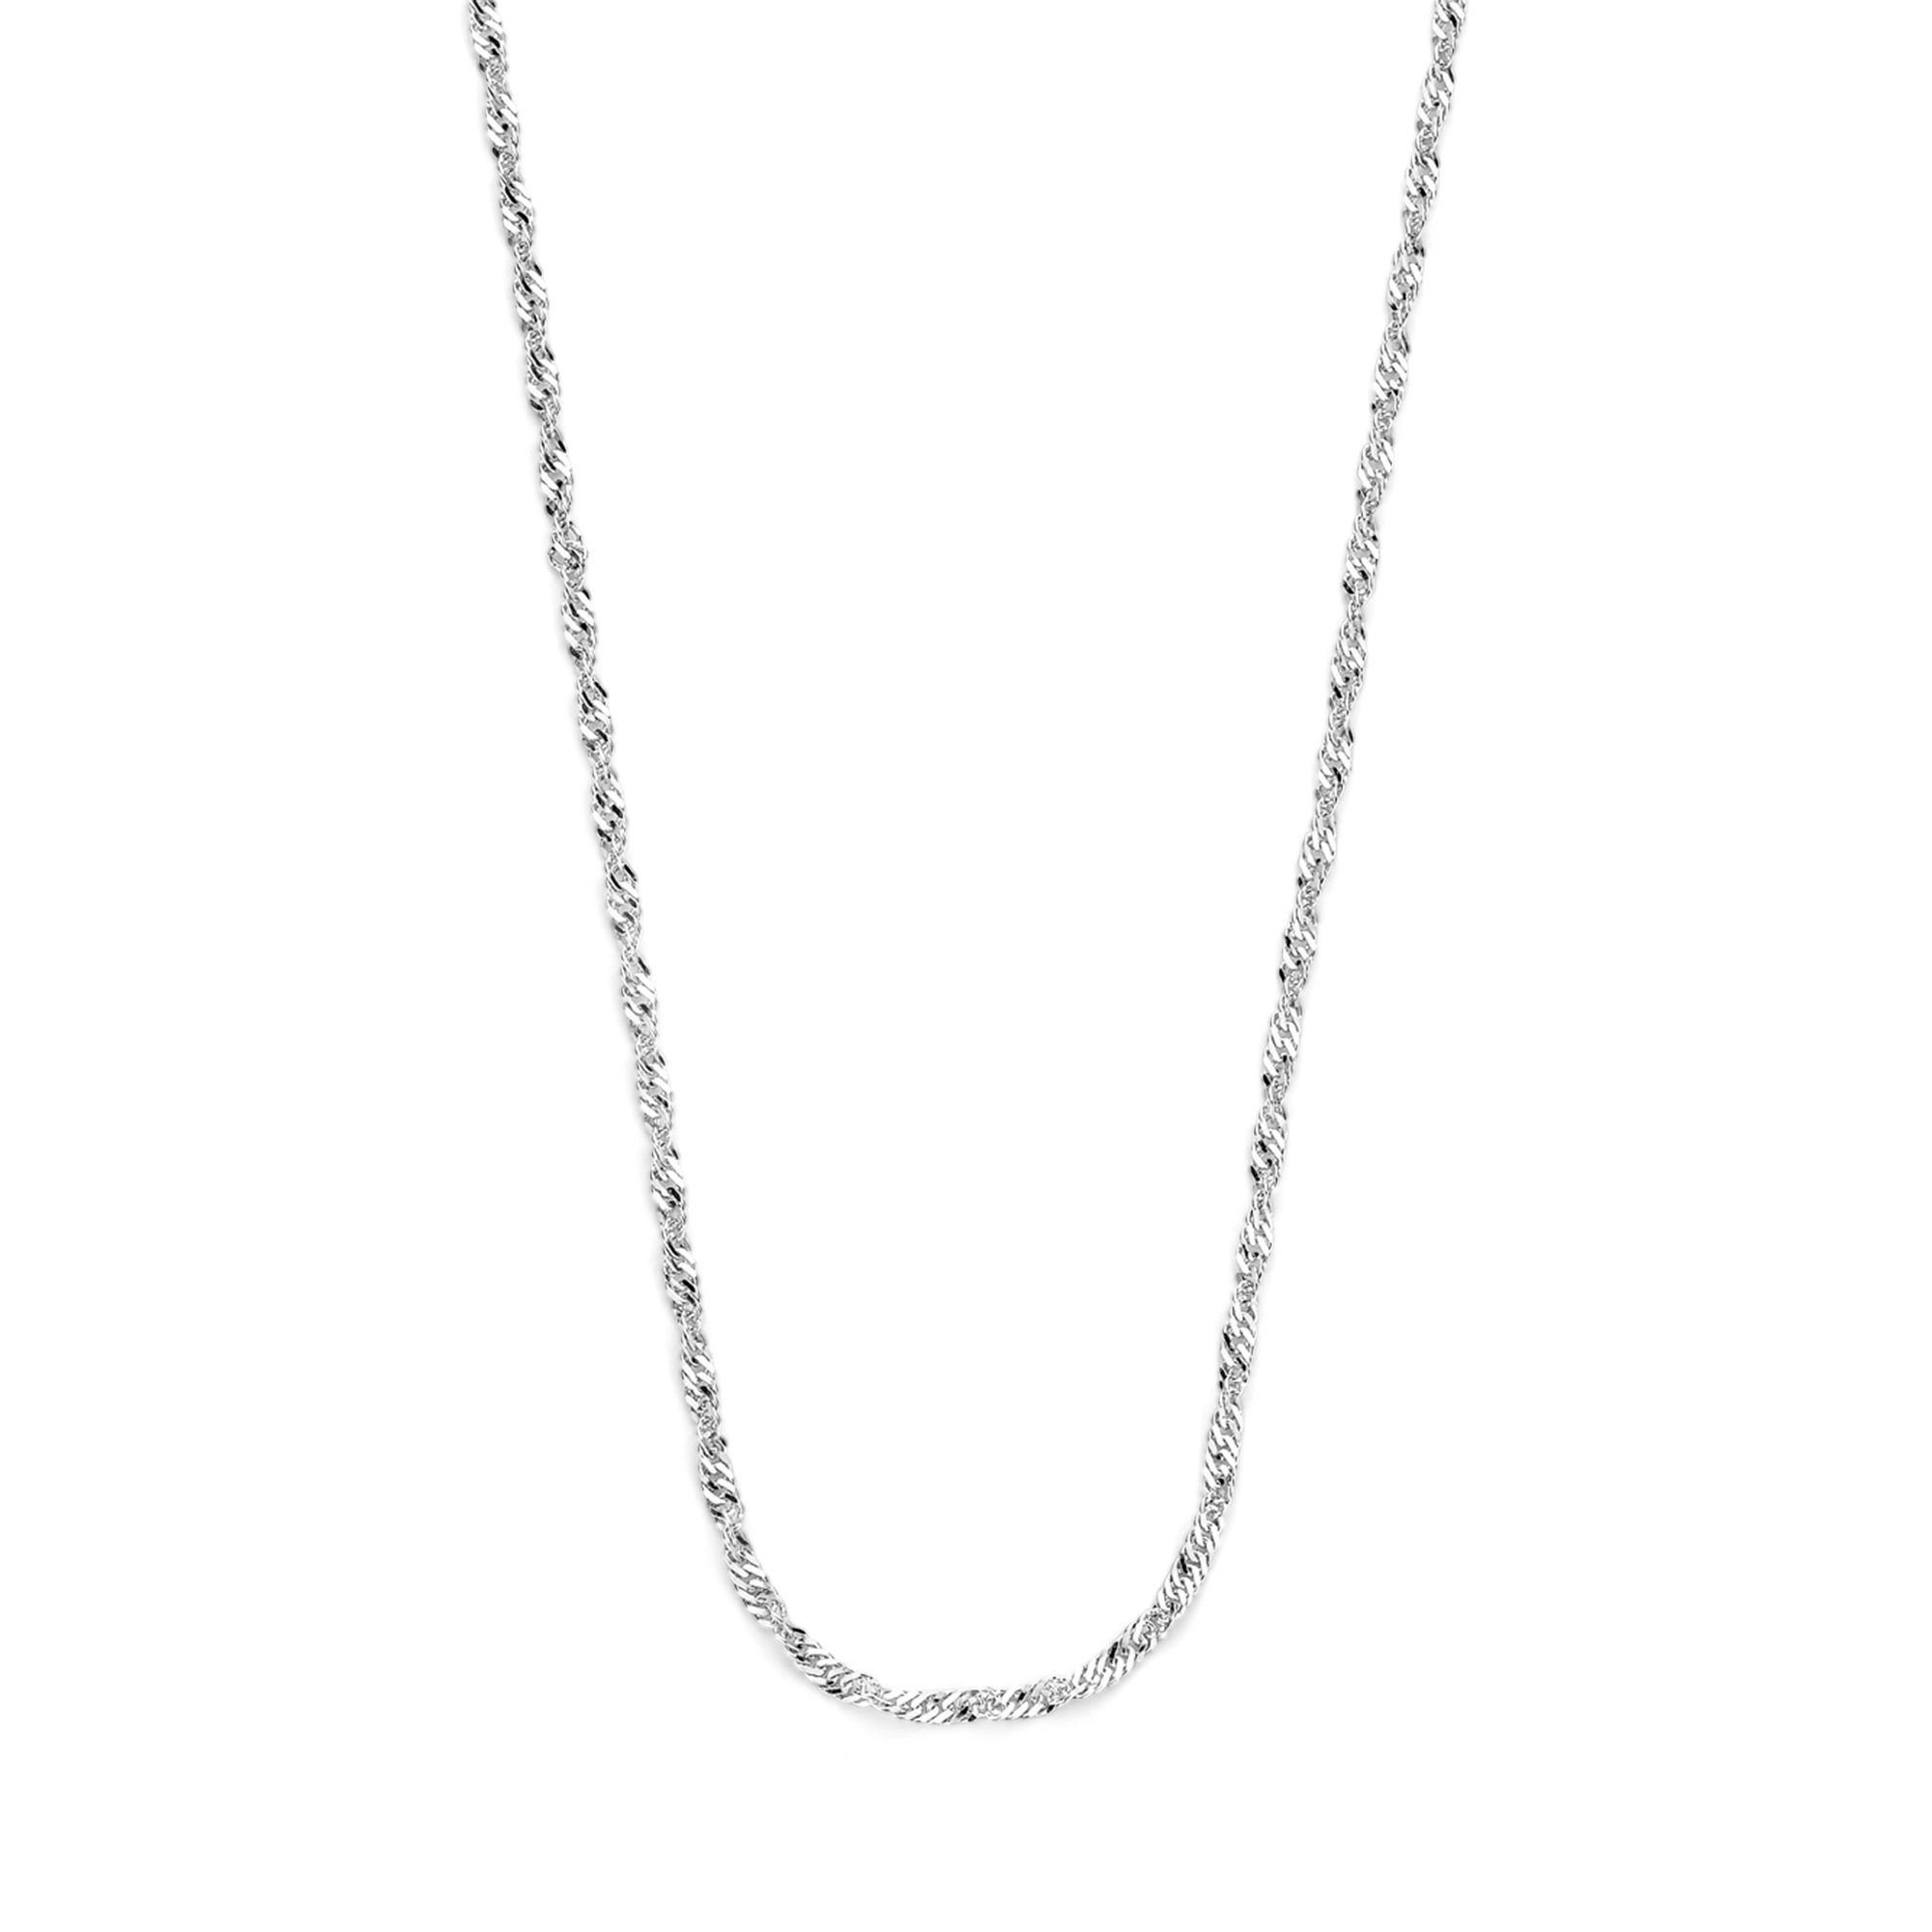 Selected Jewels Léna Inès collana in argento sterling 925